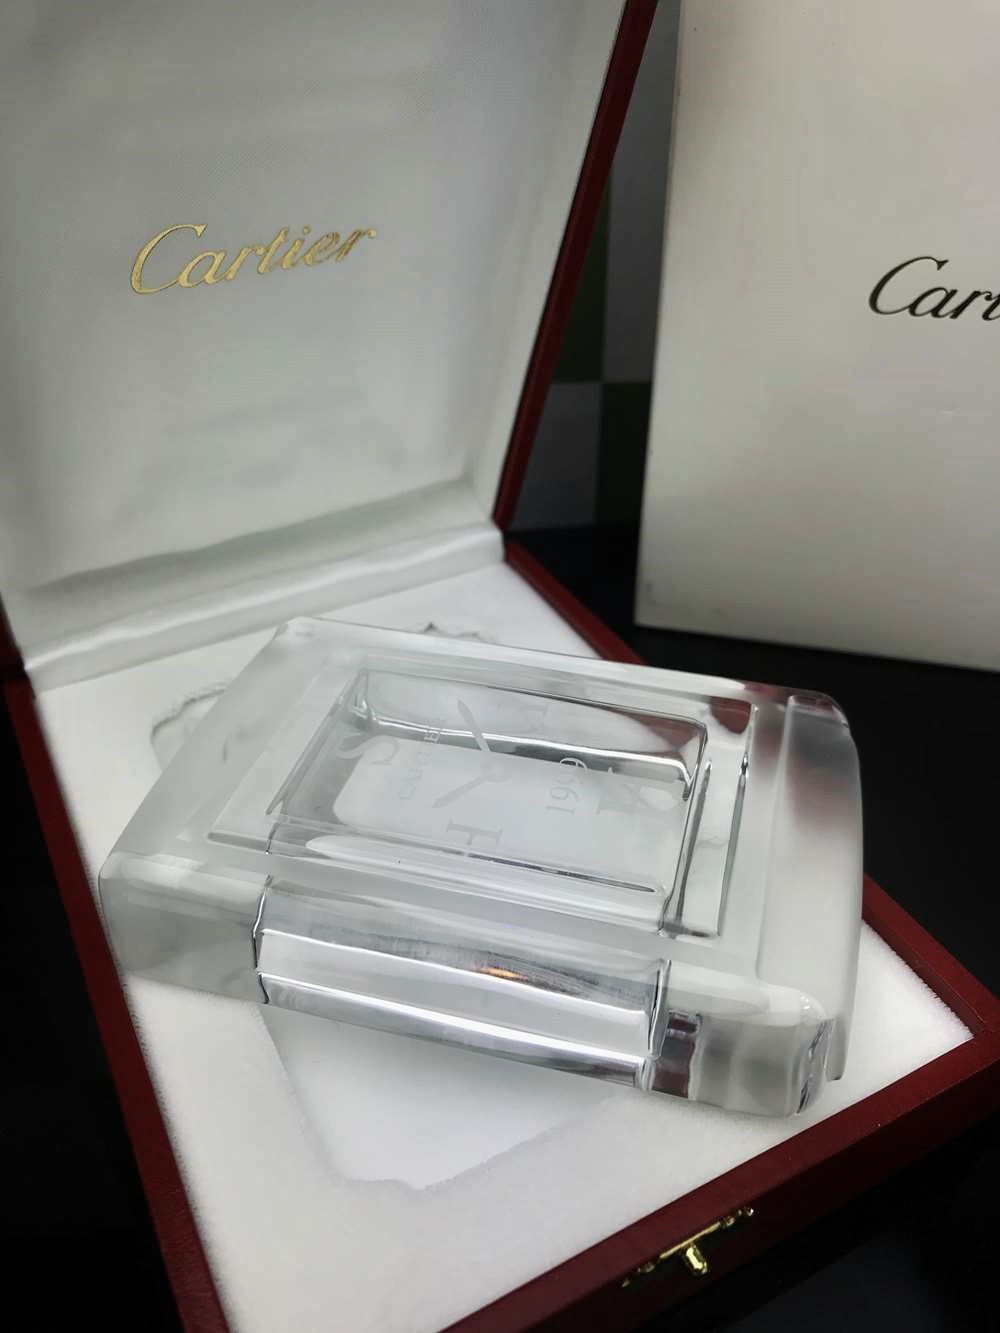 Lot 6 - Cartier Frosted Clock Paperweight In Original Box